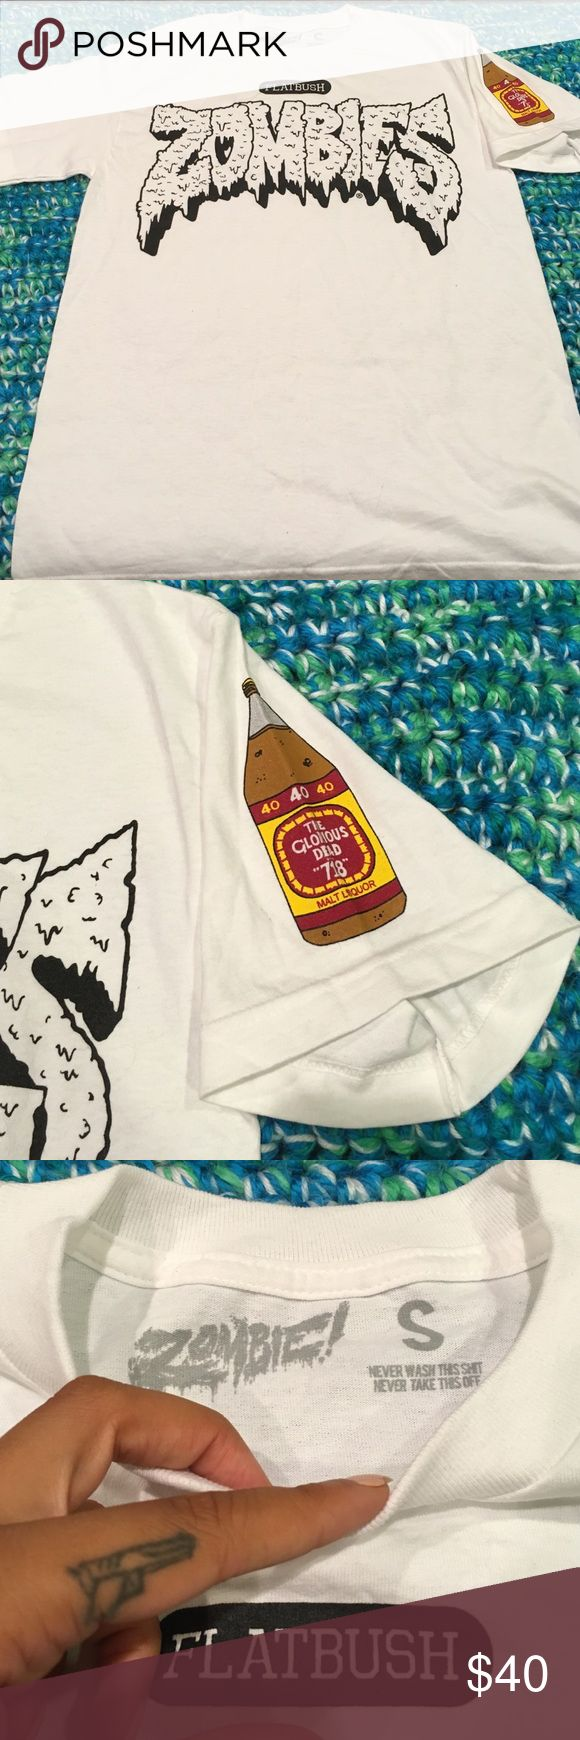 """Flatbush Zombies T-shirt White Flatbush Zombies limited edition t-shirt with 40oz """"The glorious dead """"718"""" bottle on sleeve Flatbush zombies Tops Tees - Short Sleeve"""